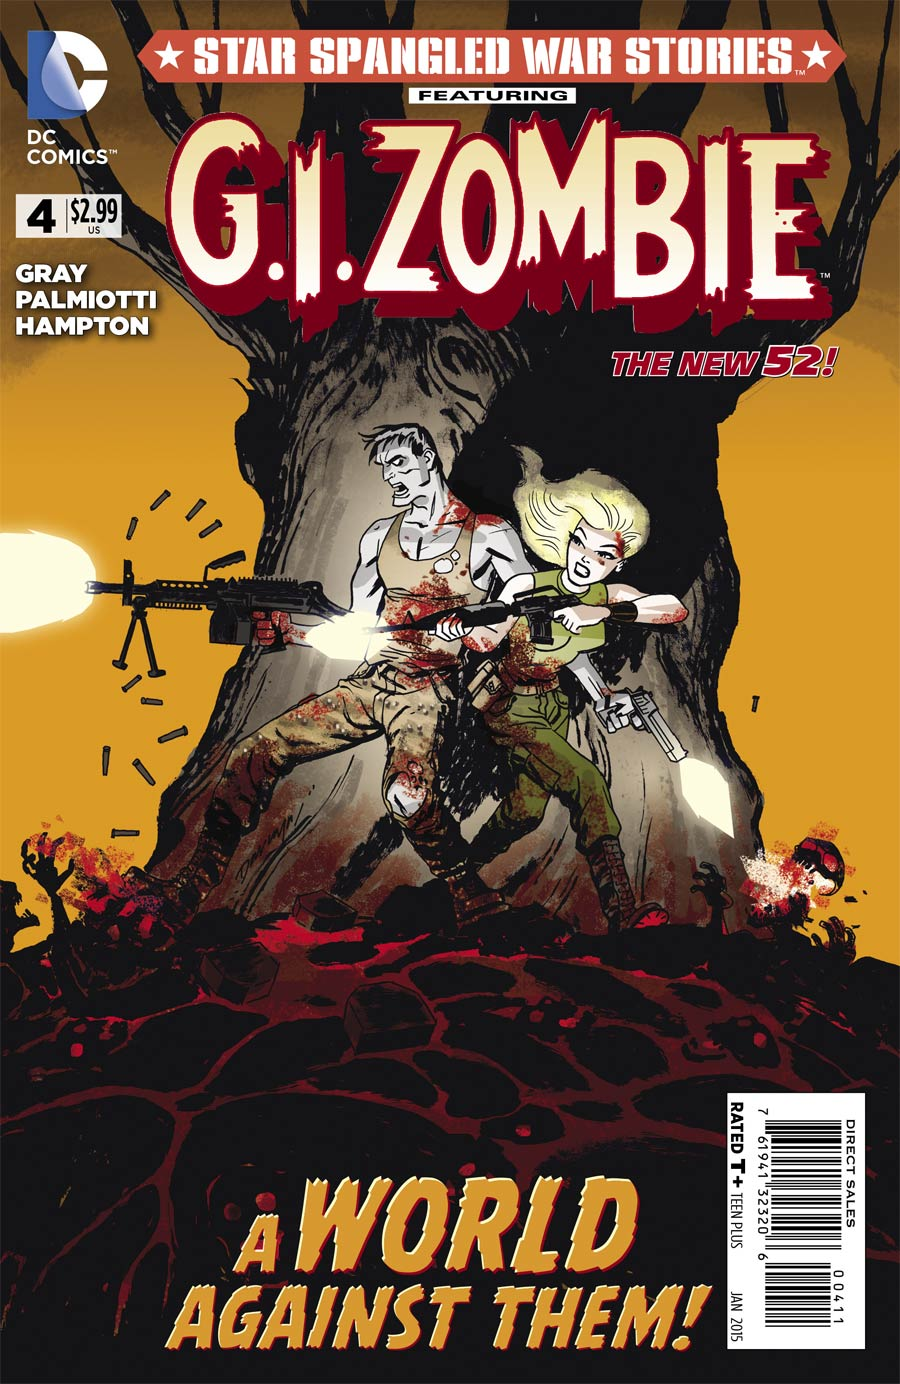 Star-Spangled War Stories Featuring GI Zombie #4